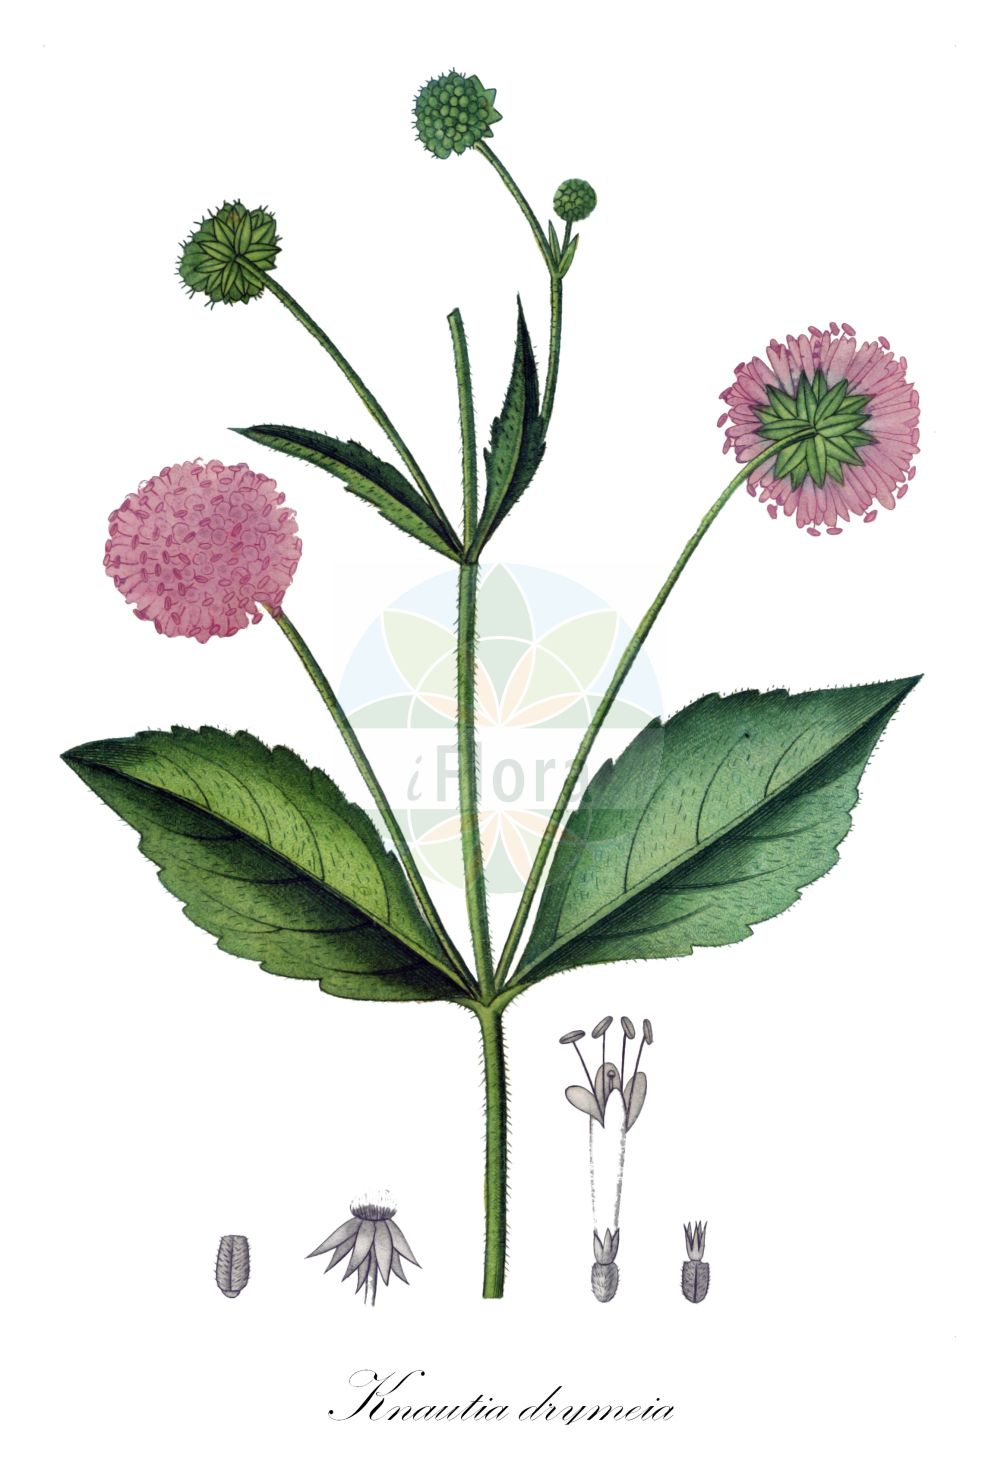 Historische Abbildung von Knautia drymeia (Ungarische Witwenblume - Hungarian Scabious). Das Bild zeigt Blatt, Bluete, Frucht und Same. ---- Historical Drawing of Knautia drymeia (Ungarische Witwenblume - Hungarian Scabious).The image is showing leaf, flower, fruit and seed.(Knautia drymeia,Ungarische Witwenblume,Hungarian Scabious,Scabiosa sylvatica,Breitblaettrige ,Knautia,Witwenblume,Scabious,Caprifoliaceae,Geissblattgewaechse,Honeysuckle family,Blatt,Bluete,Frucht,Same,leaf,flower,fruit,seed,de Saint-Hilaire (1808-1822))